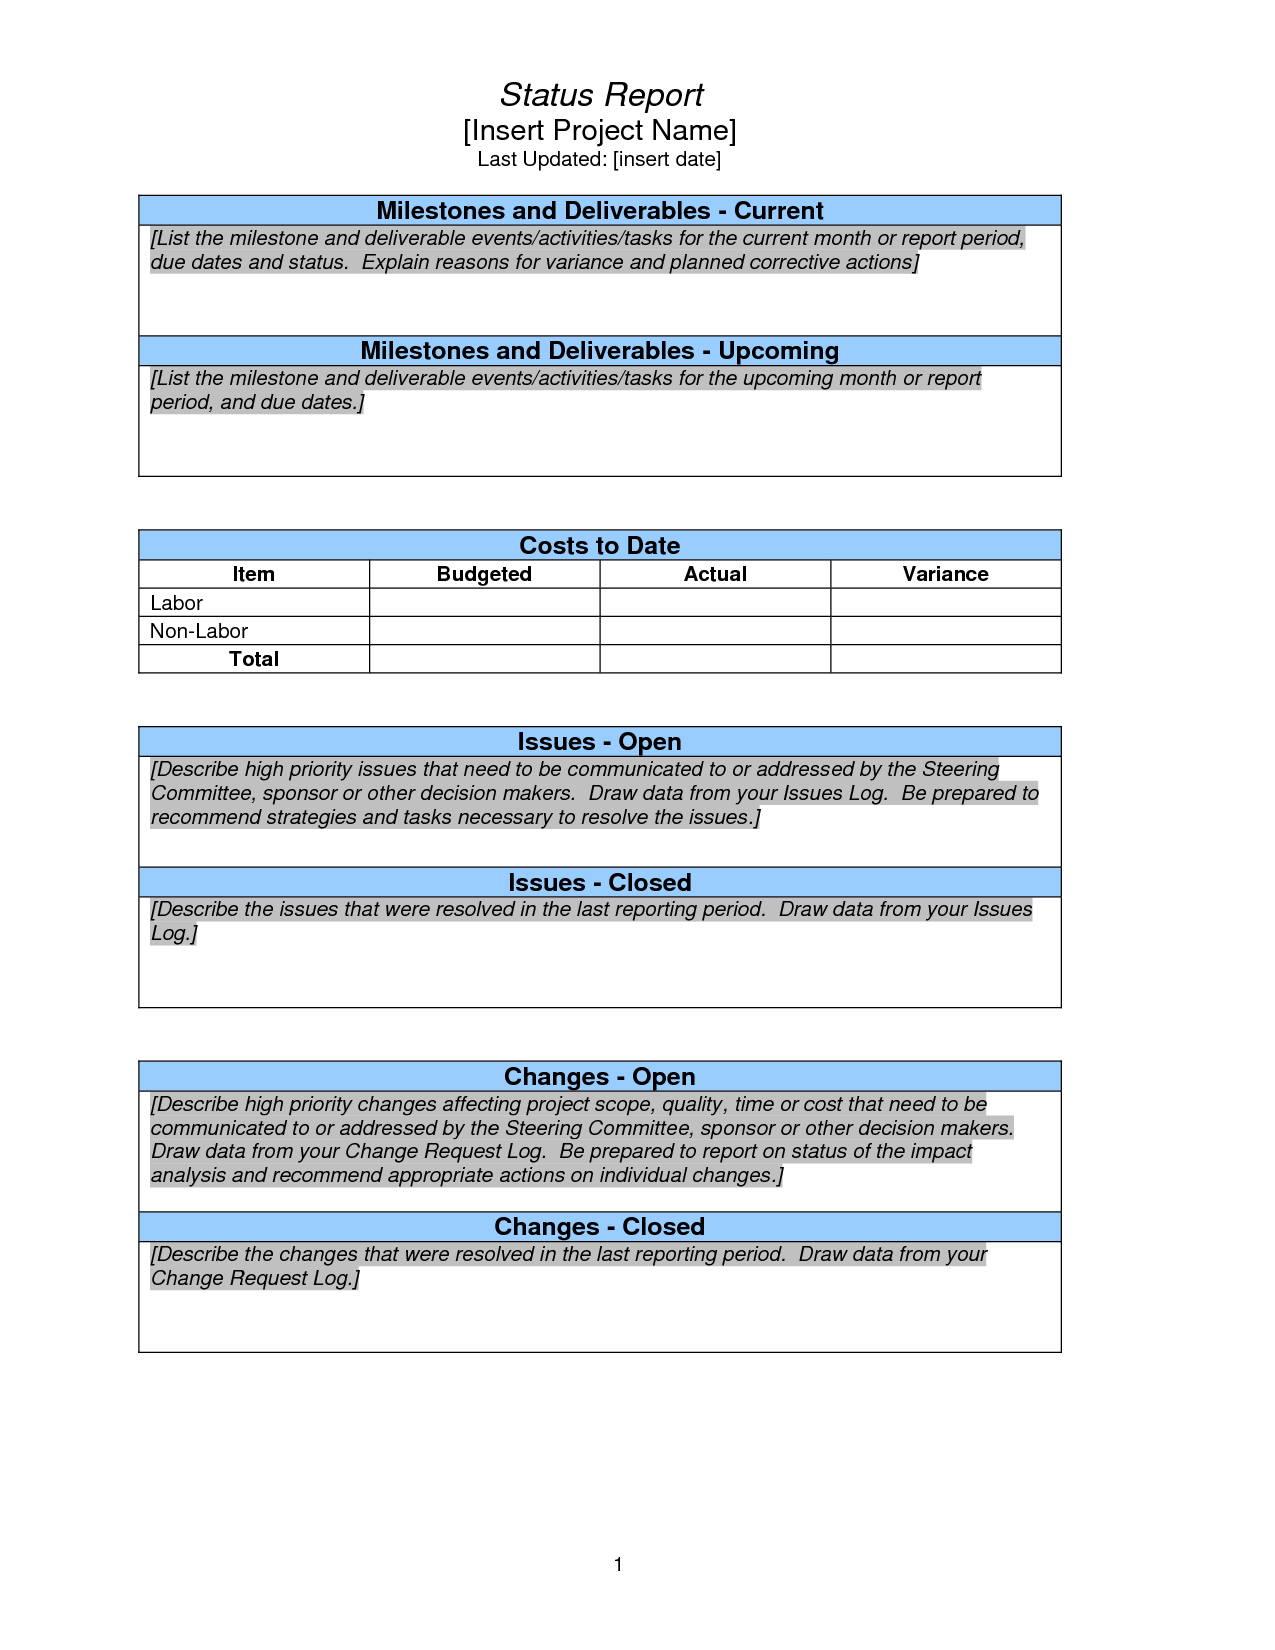 009 Project Management Status Report Template Ideas Amazing in Weekly Progress Report Template Project Management